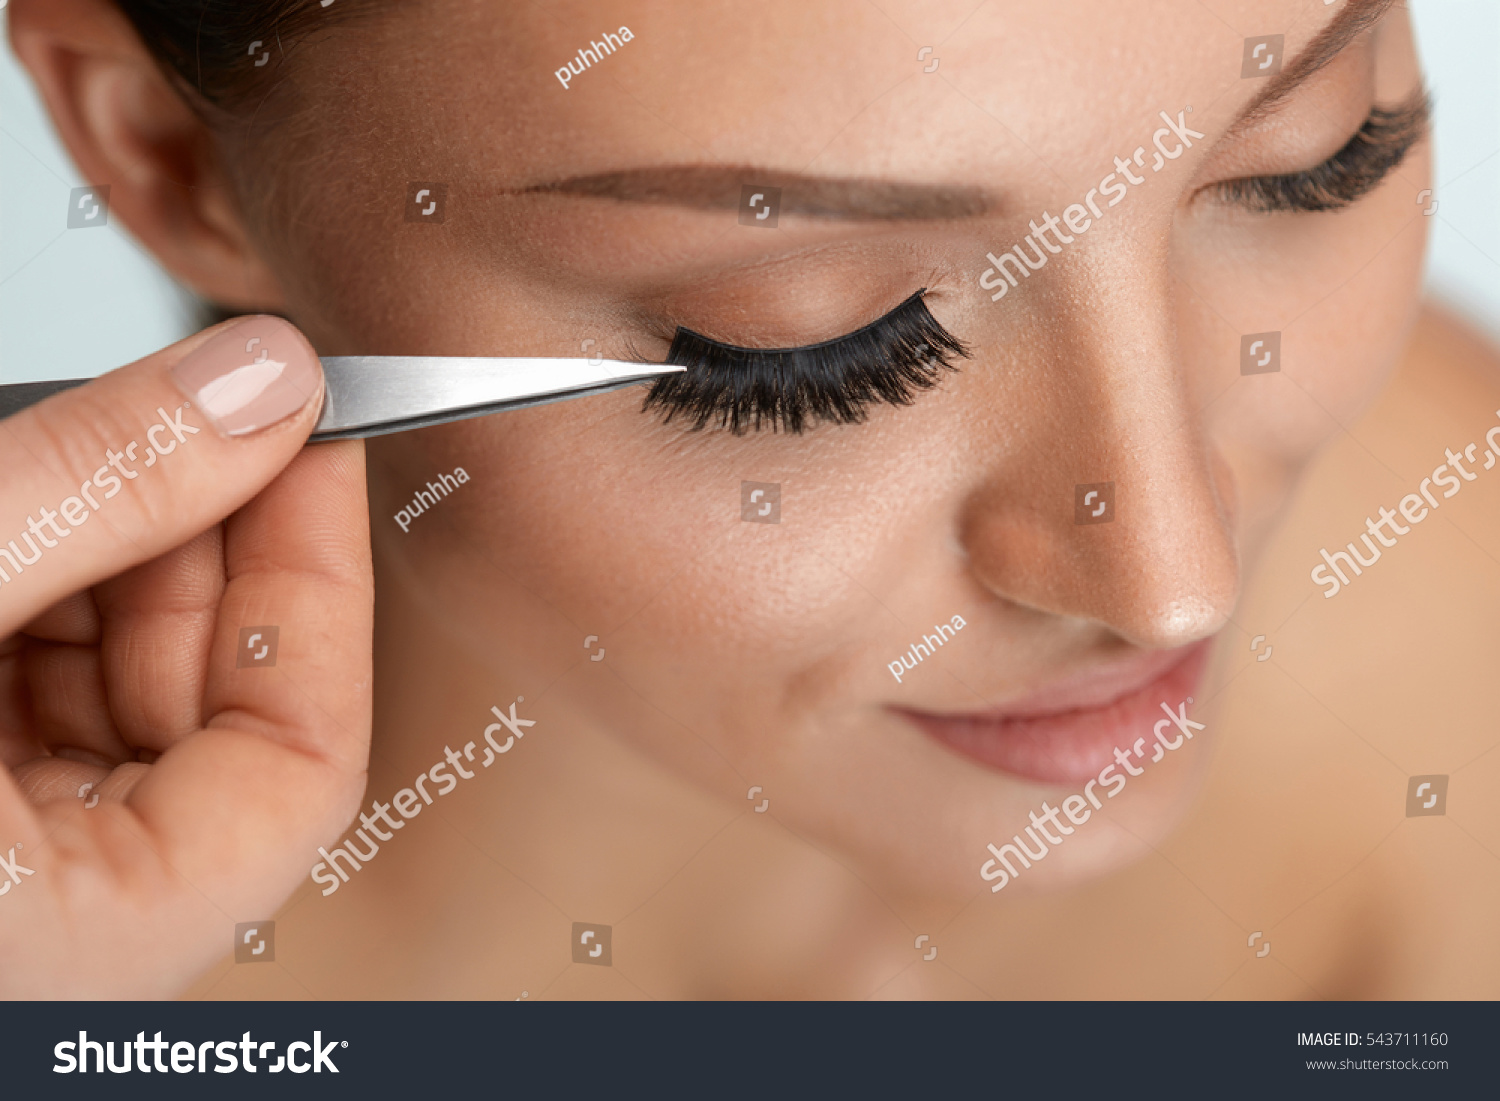 08bab5b5d72 Beautiful Woman Applying False Eyelashes With Tweezers. Closeup Of Young  Female Model Face With Professional Facial Makeup, Smooth Skin And Long  Black Thick ...